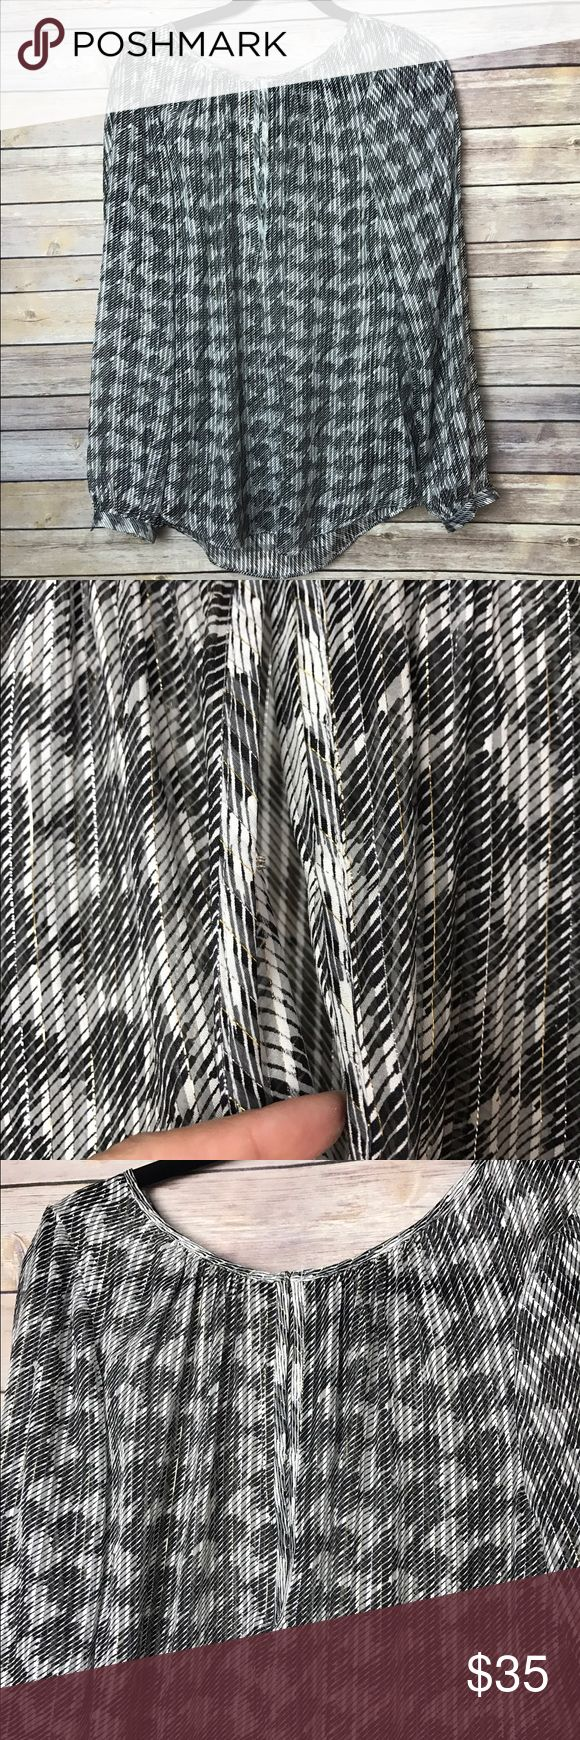 """WHBM Silk Metallic Gold Silver Blouse White House Black Market black and white silk blouse with gold and silver metallic trim Faux with hook and eye closure  Size 10 which translates to a medium according to the WHBM size guide. Armpit to armpit approx. 21"""" Length approx. 28"""" Excellent used condition, no flaws. MSRP $98 Smoke free home White House Black Market Tops Blouses"""